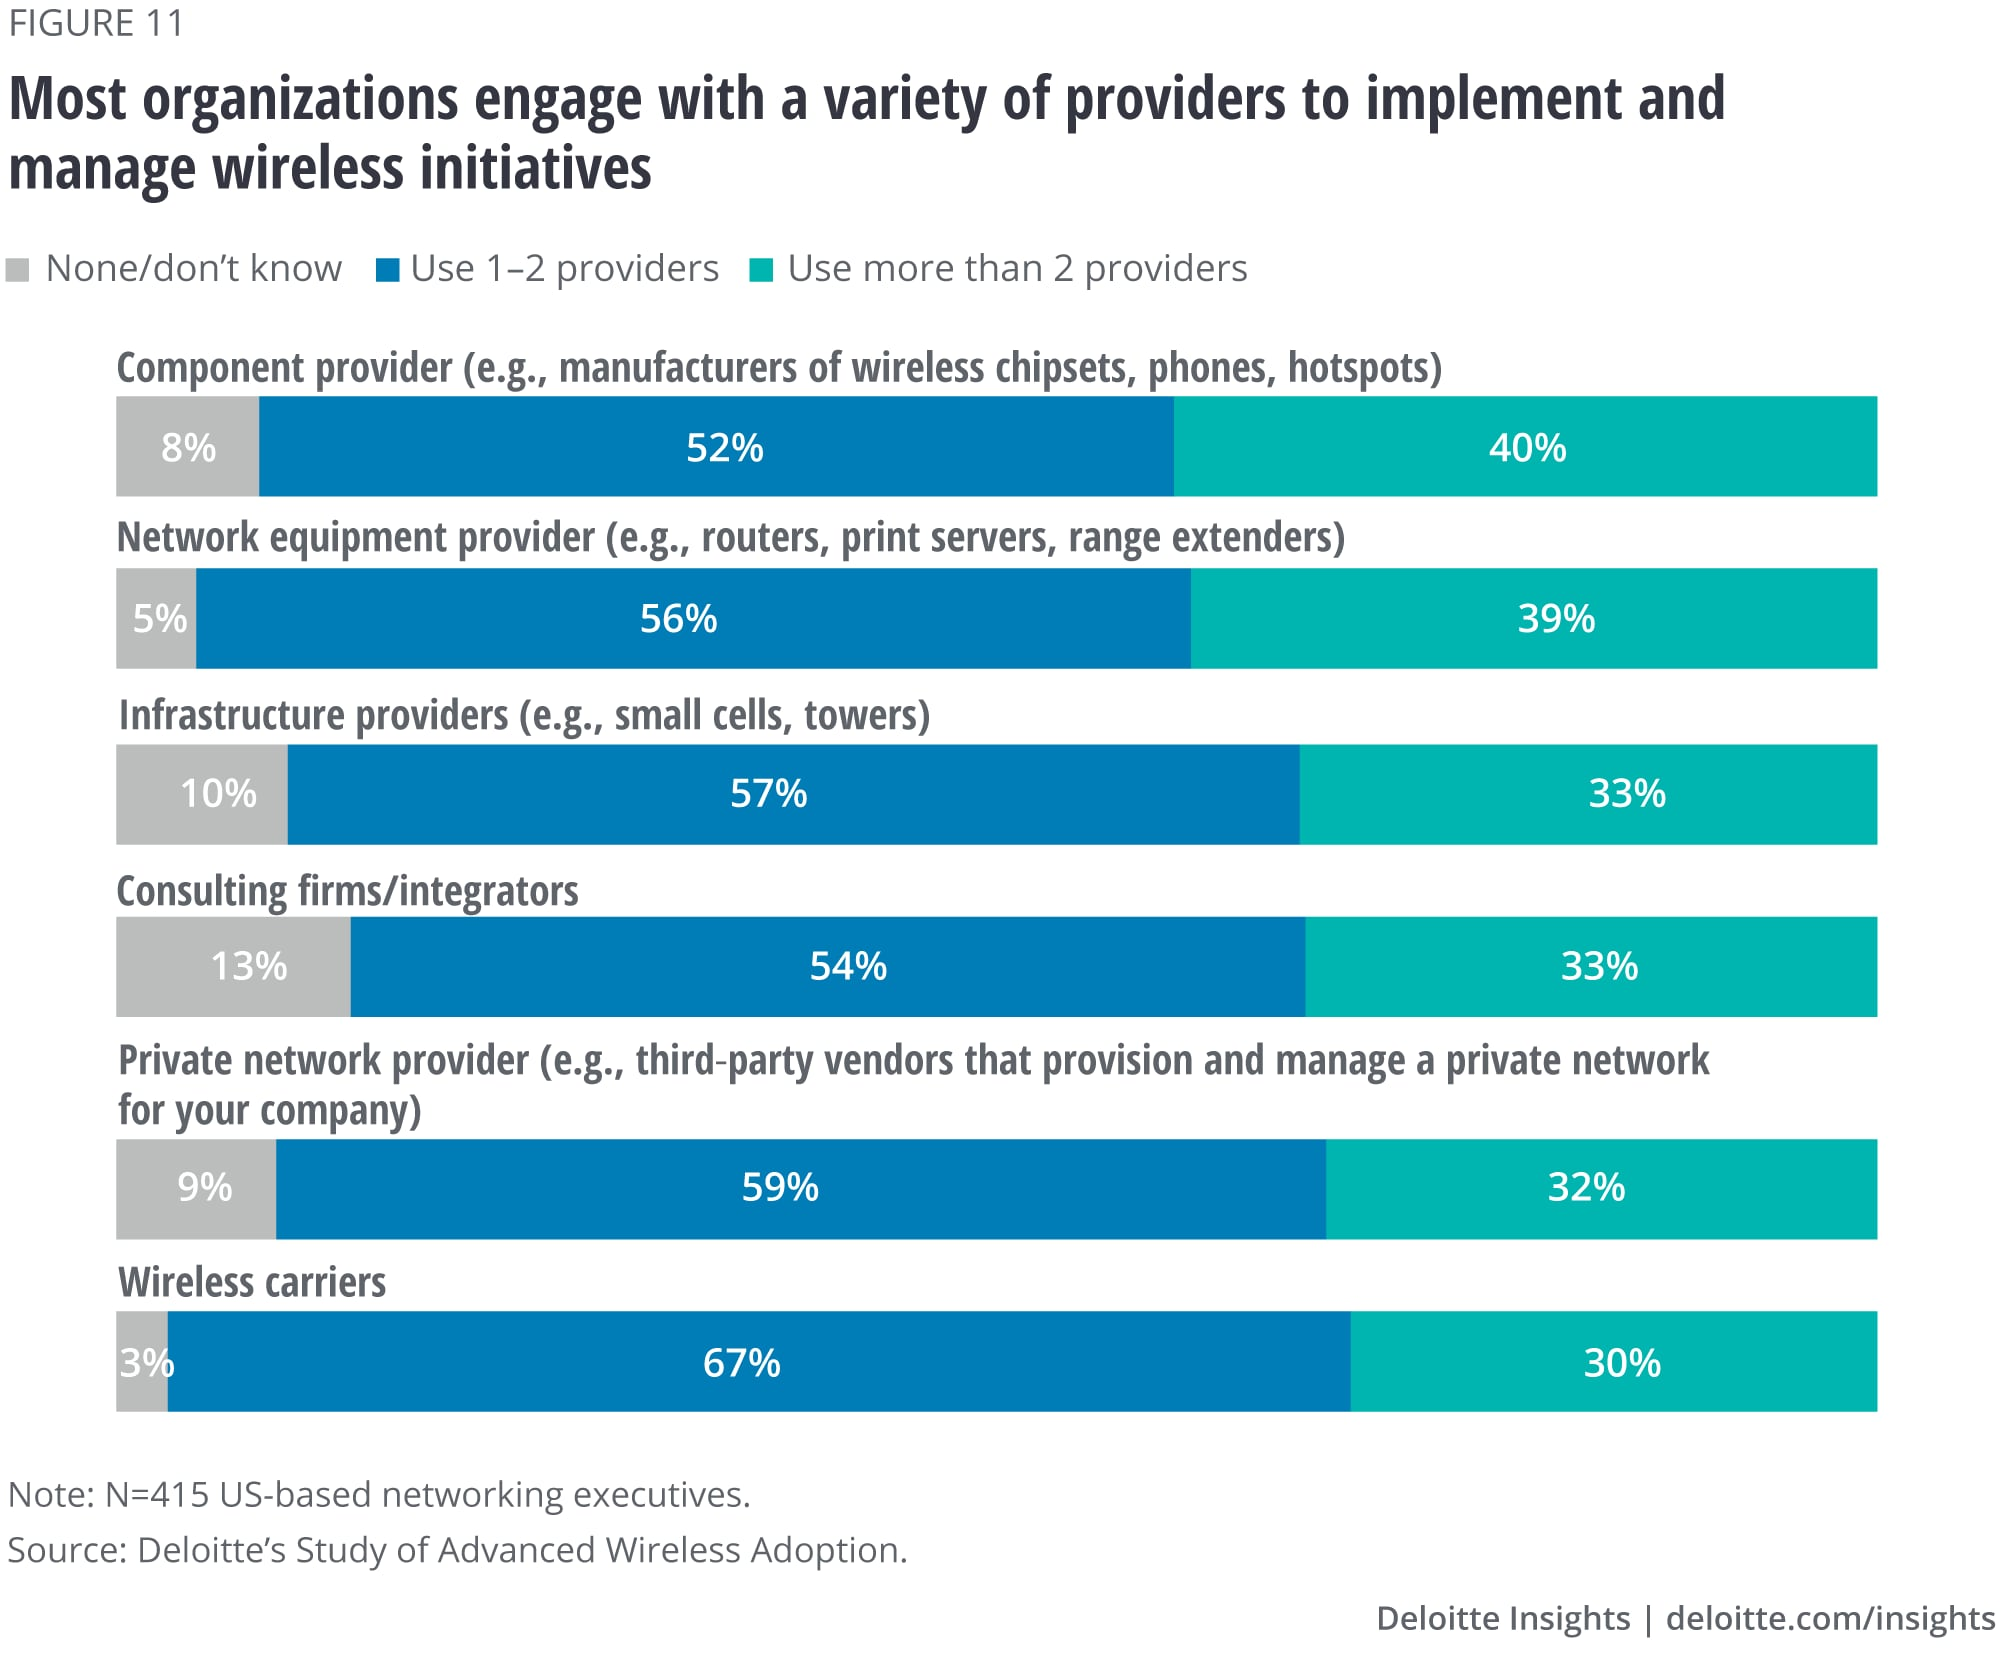 Most organizations engage with a variety of providers to implement and manage wireless initiatives